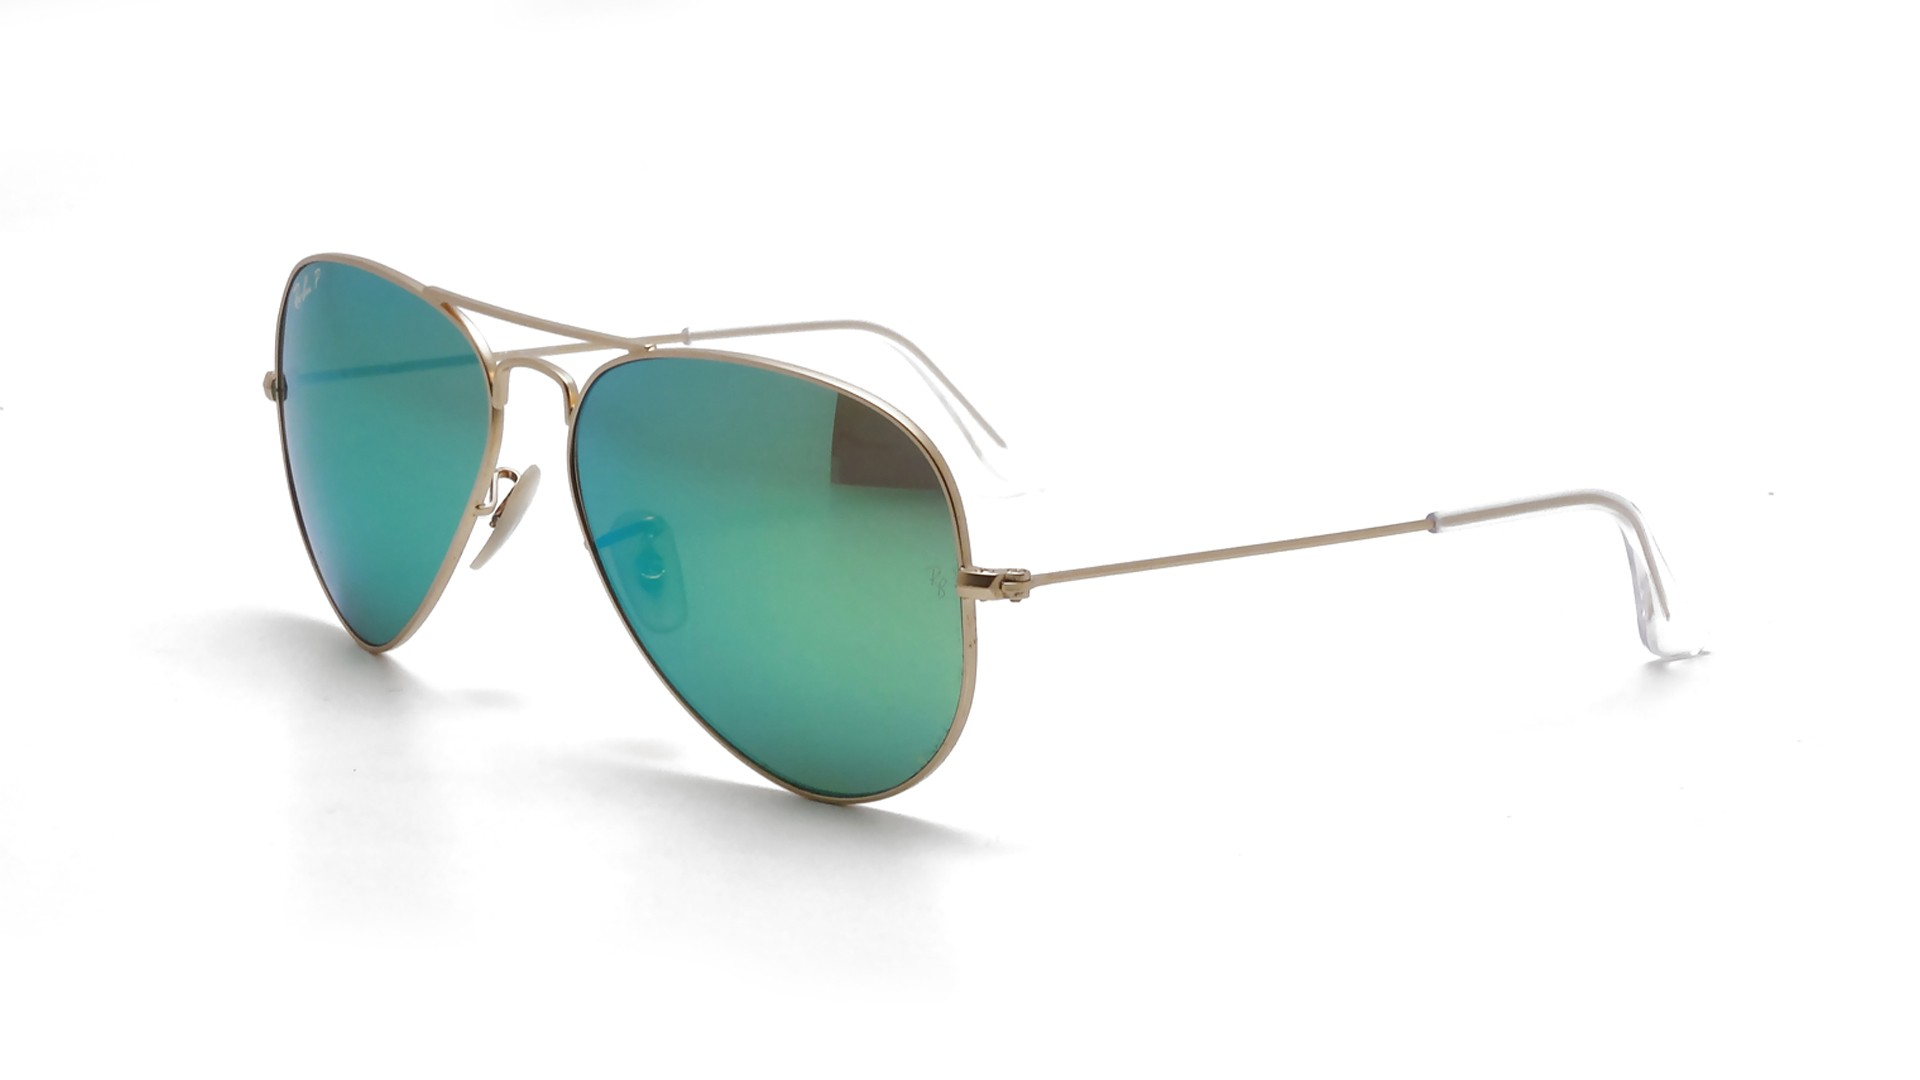 6e1860c2699f9b Sunglasses Ray-Ban Aviator Large Metal Gold RB3025 112 P9 58-14 Large  Polarized Mirror